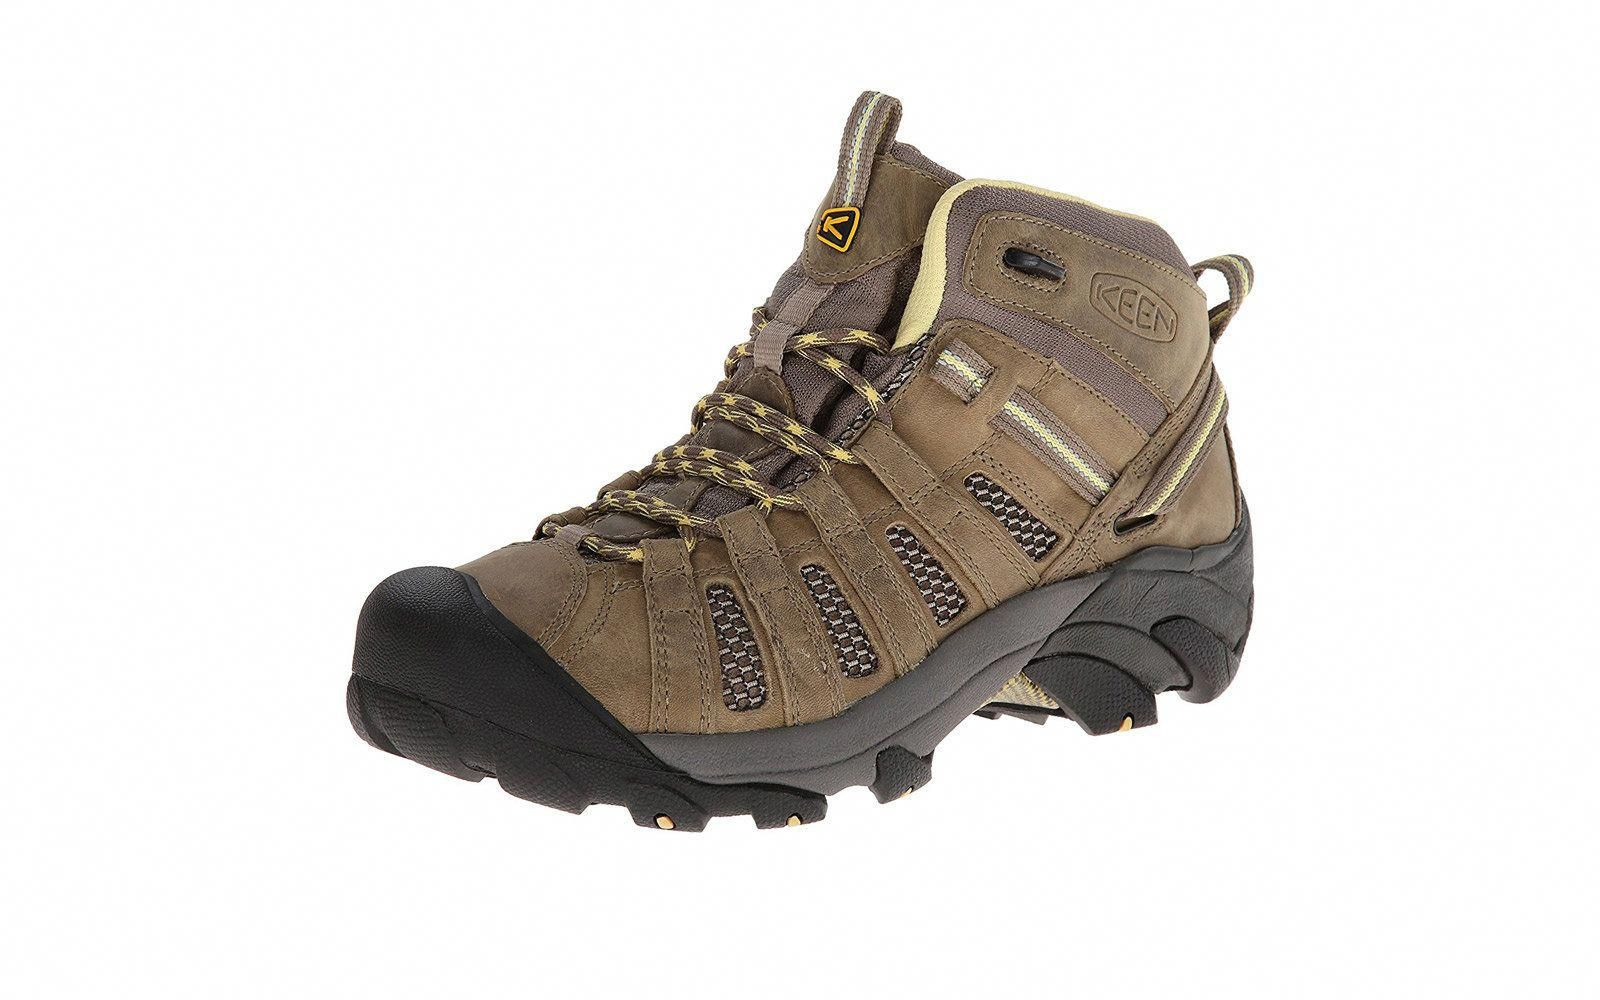 b40c95e516f58 Keen Women's Voyageur Hiking Boots | These are the sneakers, sandals, and  hiking shoes